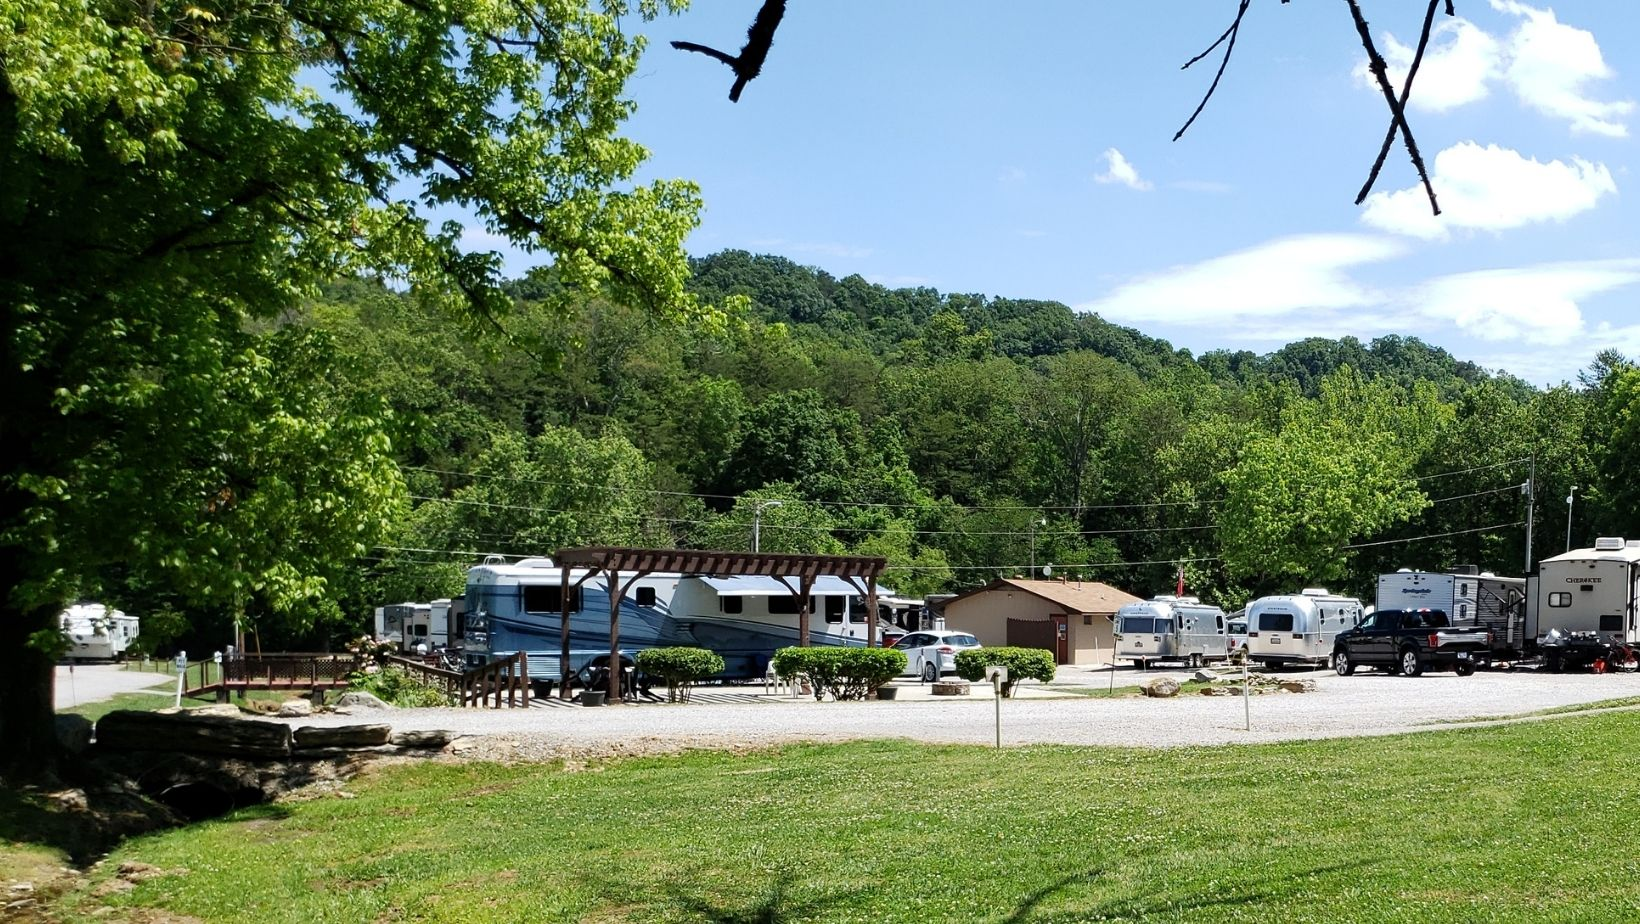 Members can save money at RV parks like Raccoon Valley Escapees RV Park